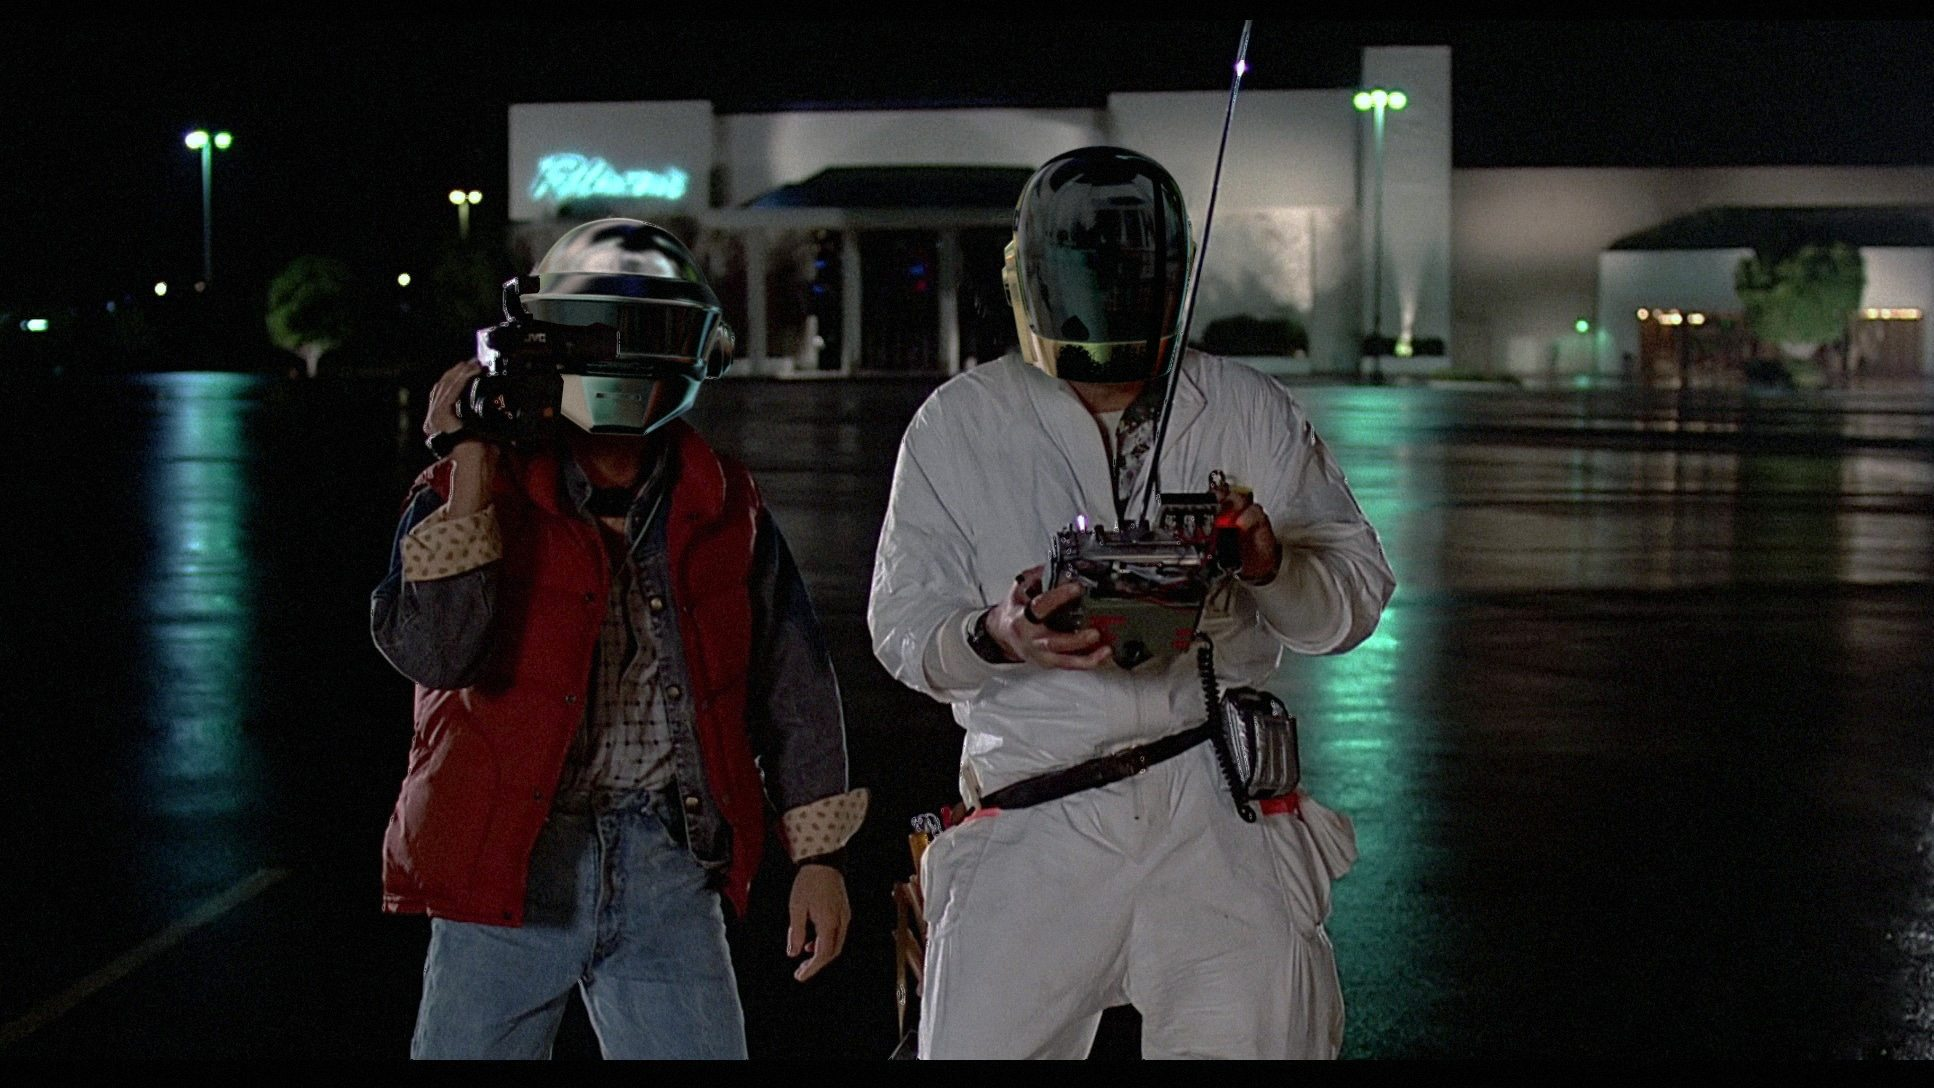 scene-11 the rdg daft punk project in epic movies